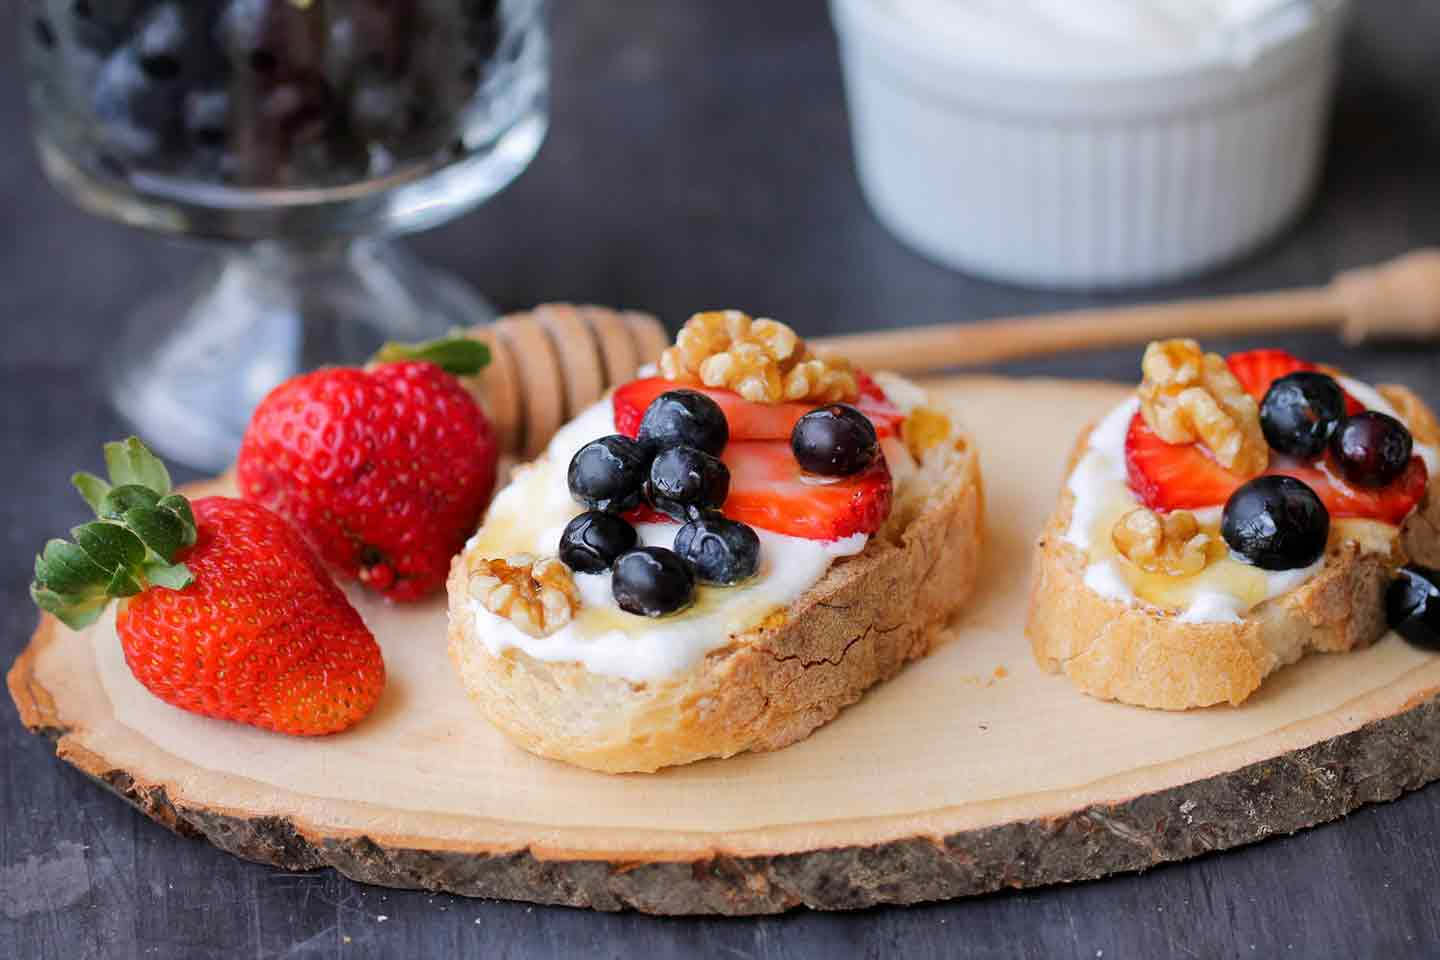 Whipped Cottage Cheese with Berries Crostini sit on a wooden serving platter, surrounded by strawberries, blueberries and honey